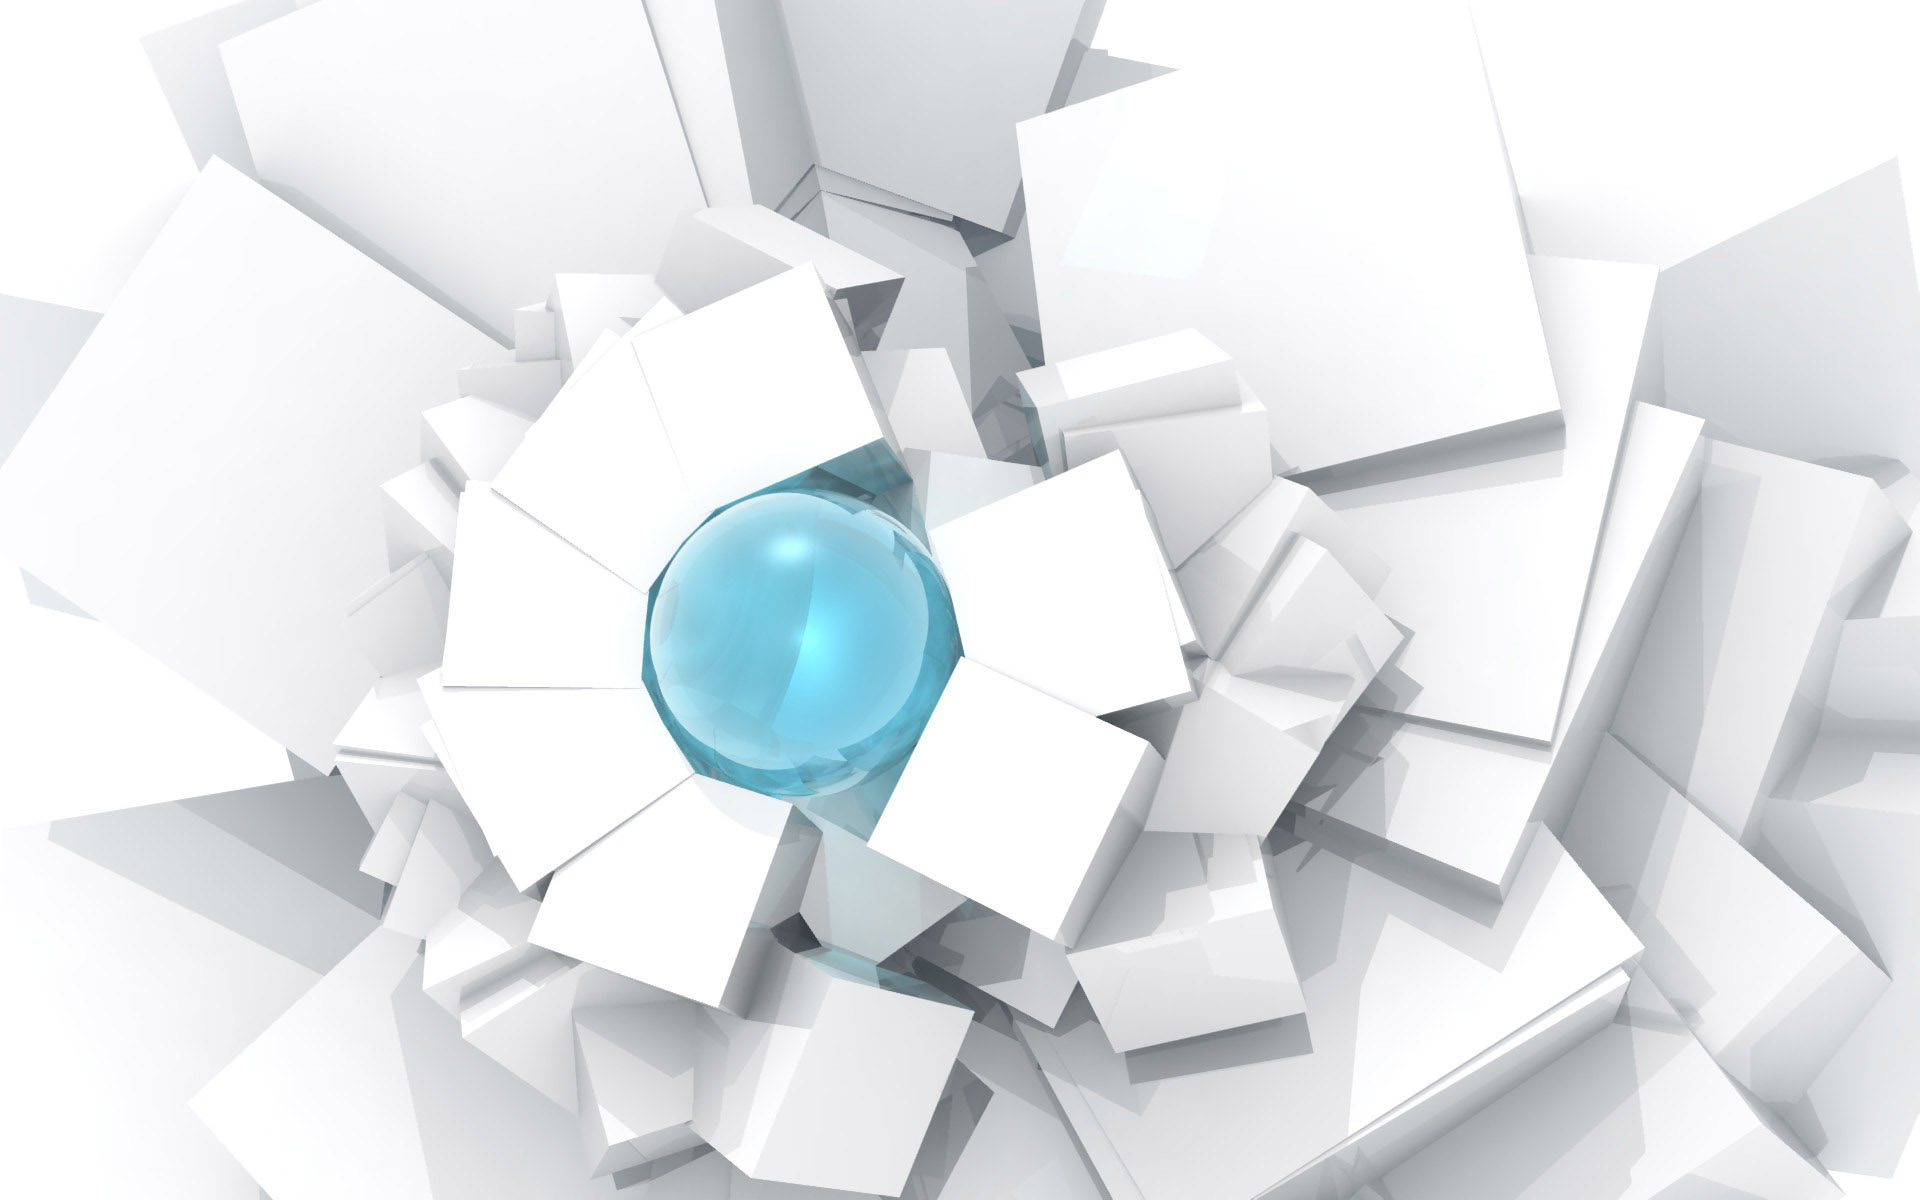 Blue ball in center white abstract photo 1920 x 1200